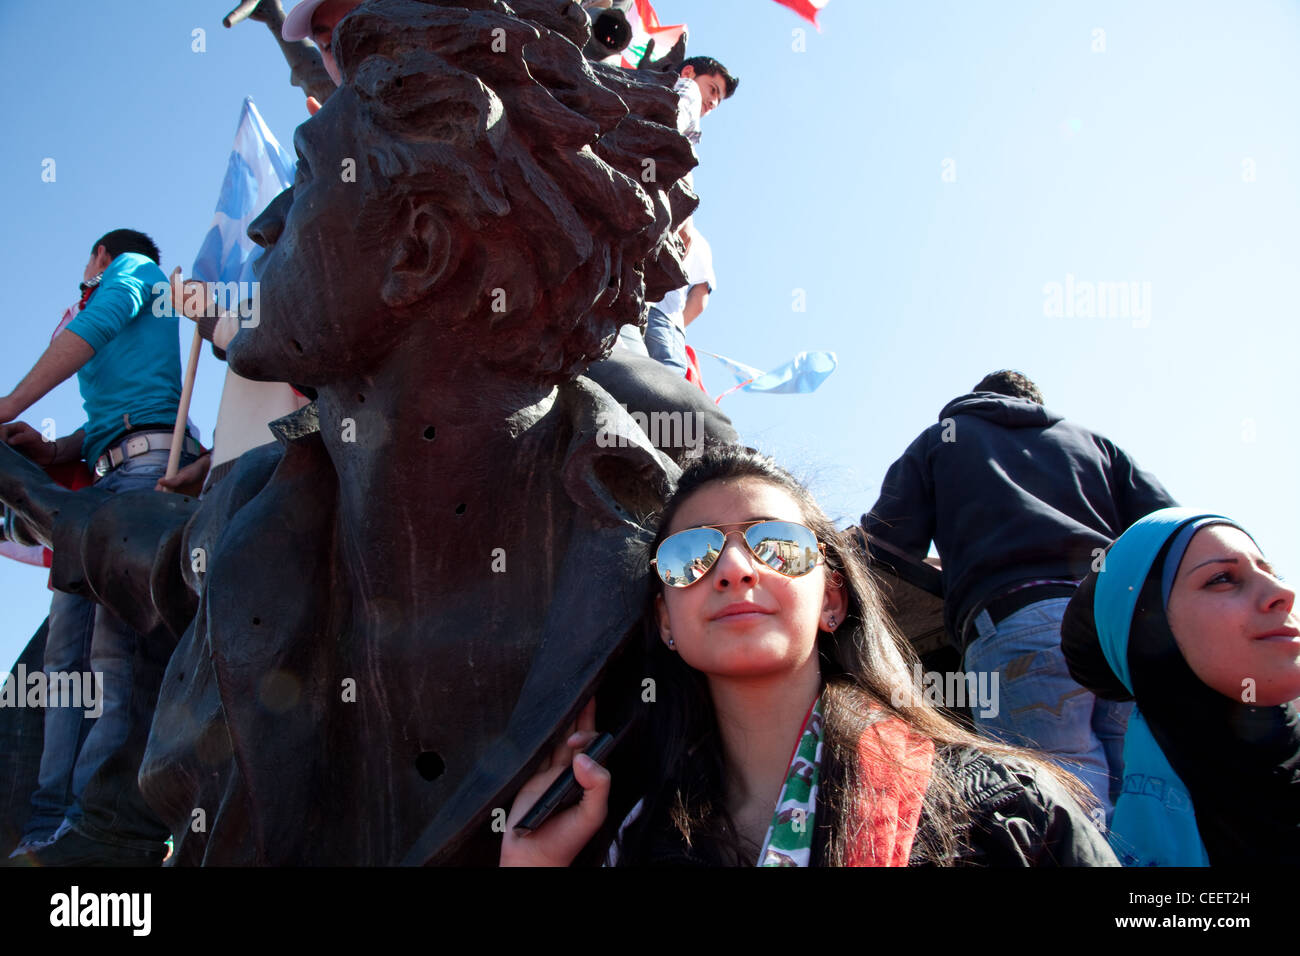 Young woman with sunglasses and uncovered hair stands at Martyrs Square statue during mass political rally in Beirut, Stock Photo